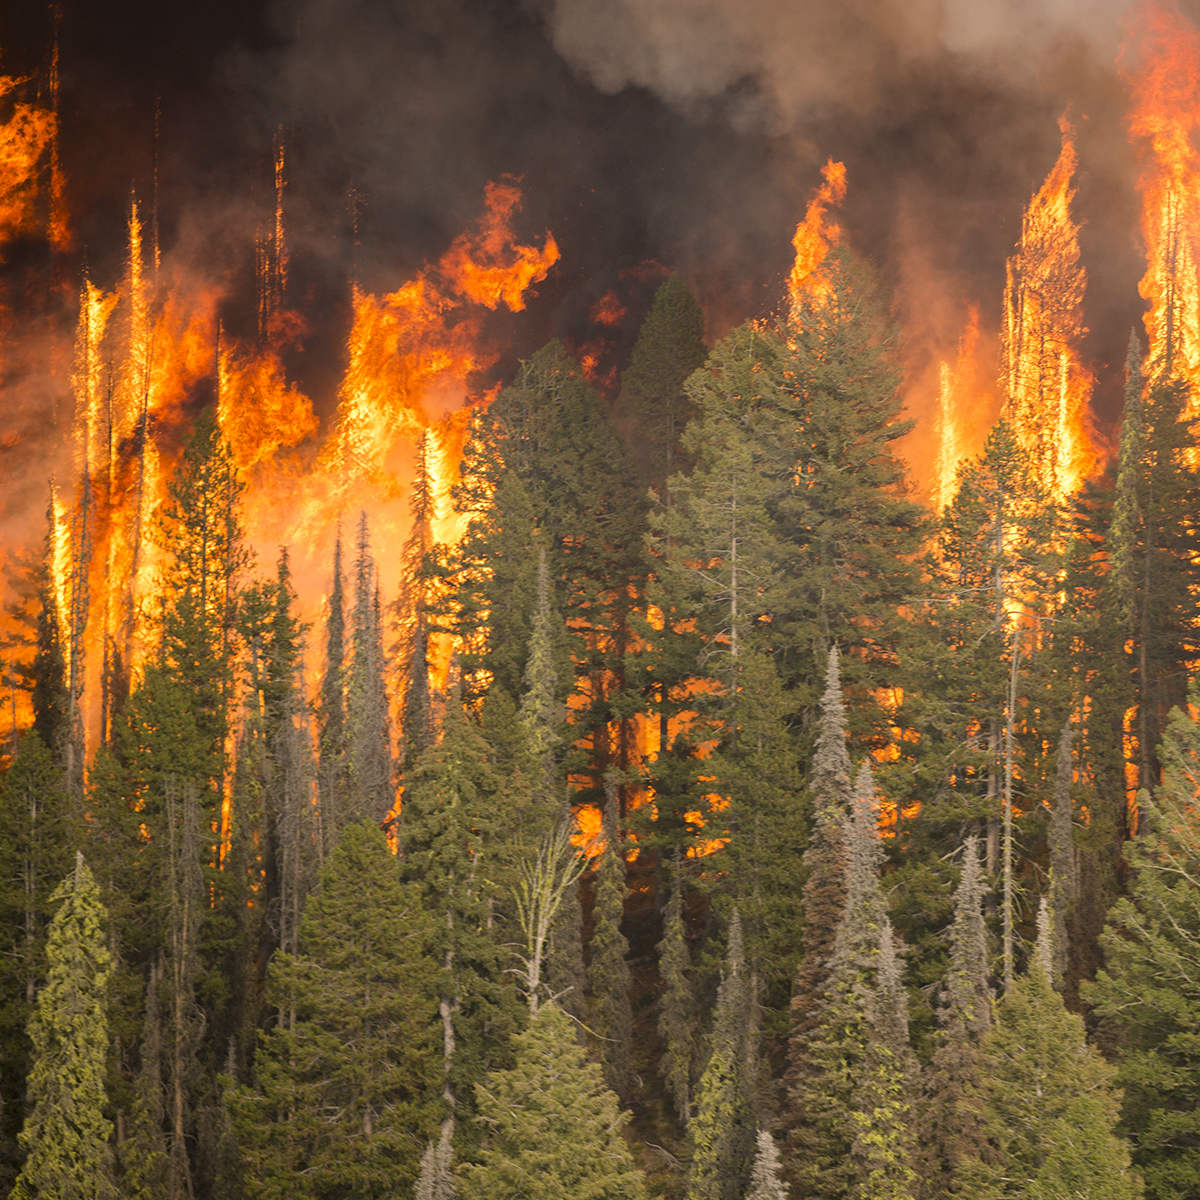 A wildfire moves through a forest.